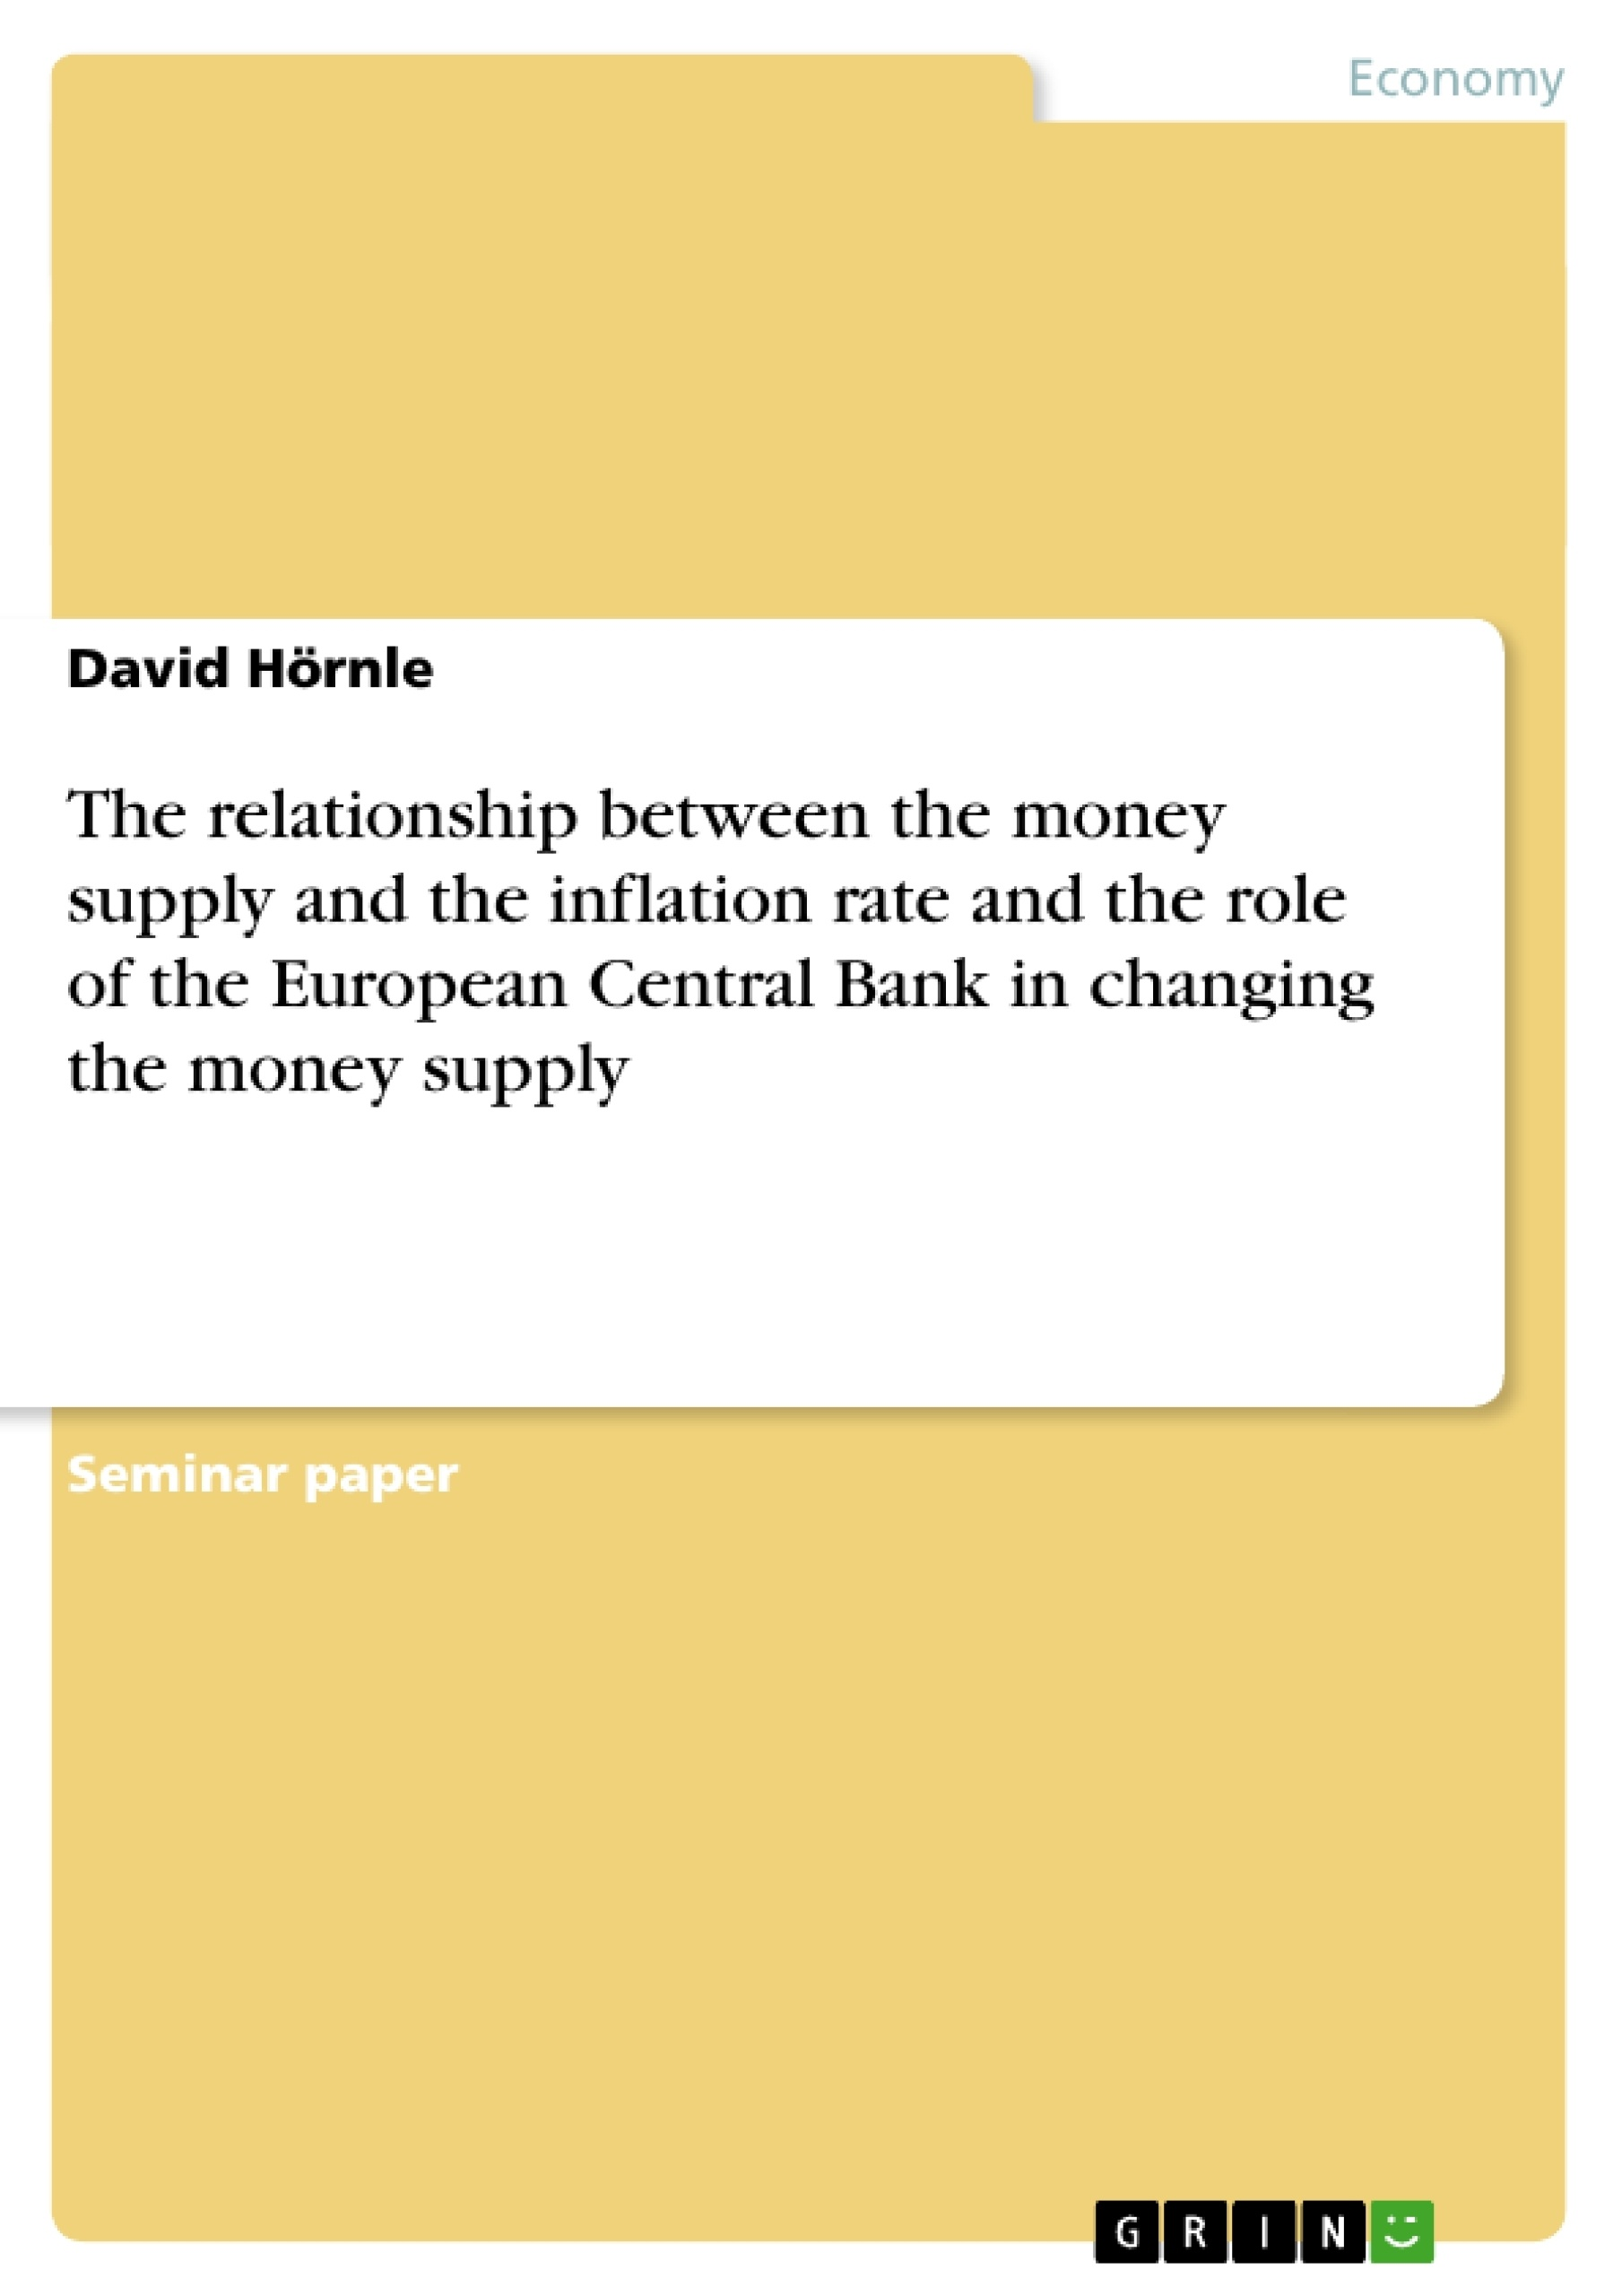 Title: The relationship between the money supply and the inflation rate and the role of the European Central Bank in changing the money supply